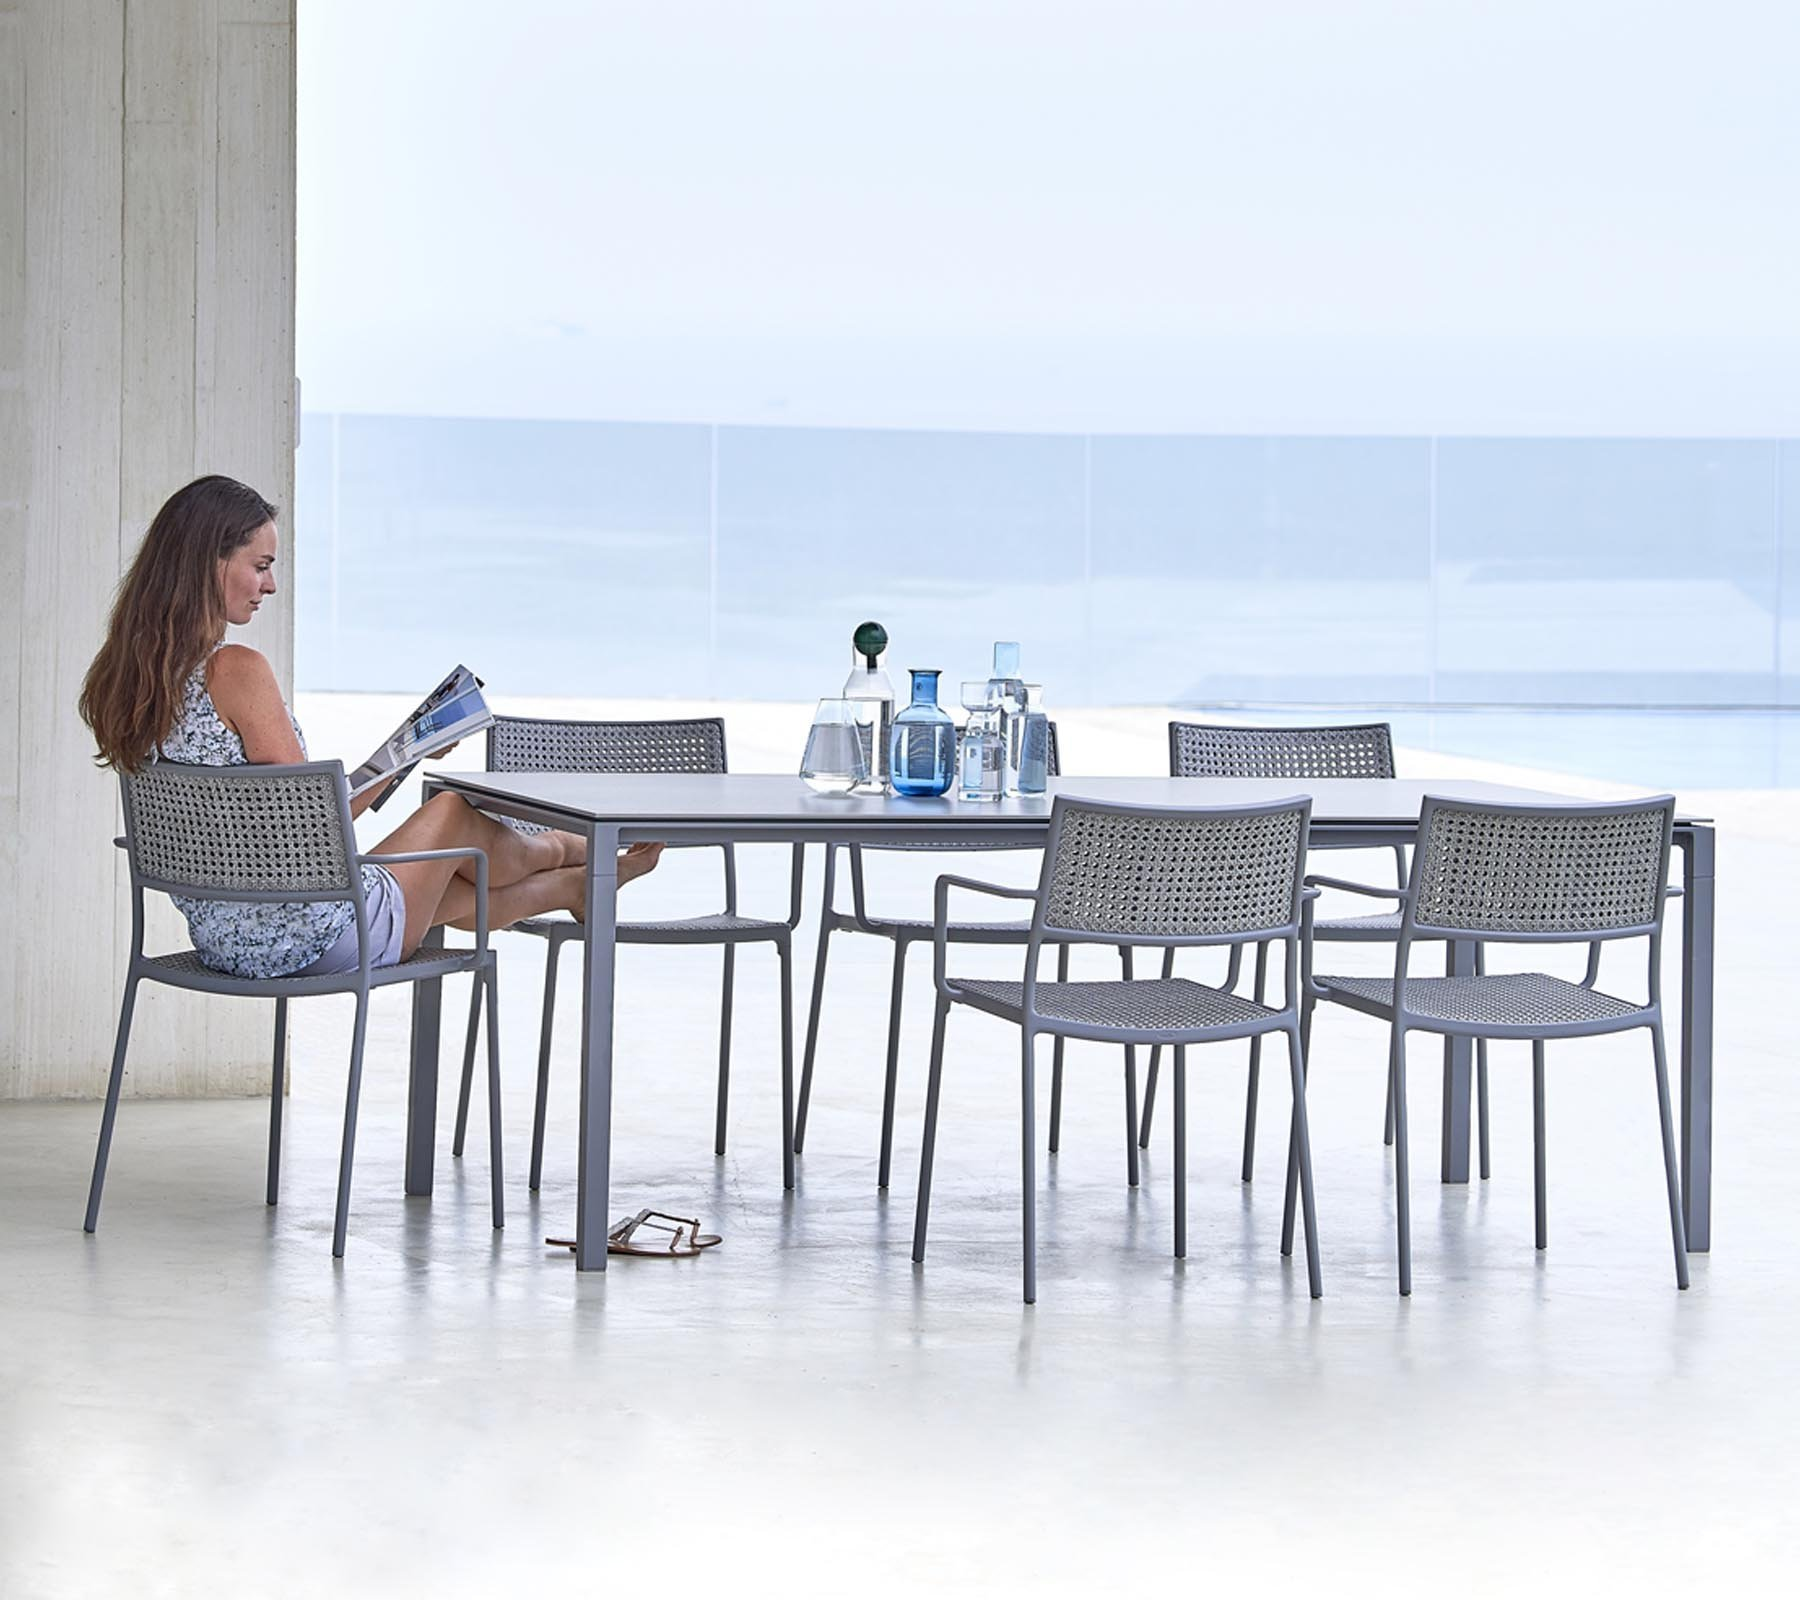 Less Dining Chair from Cane-line, designed by Welling/Ludvik